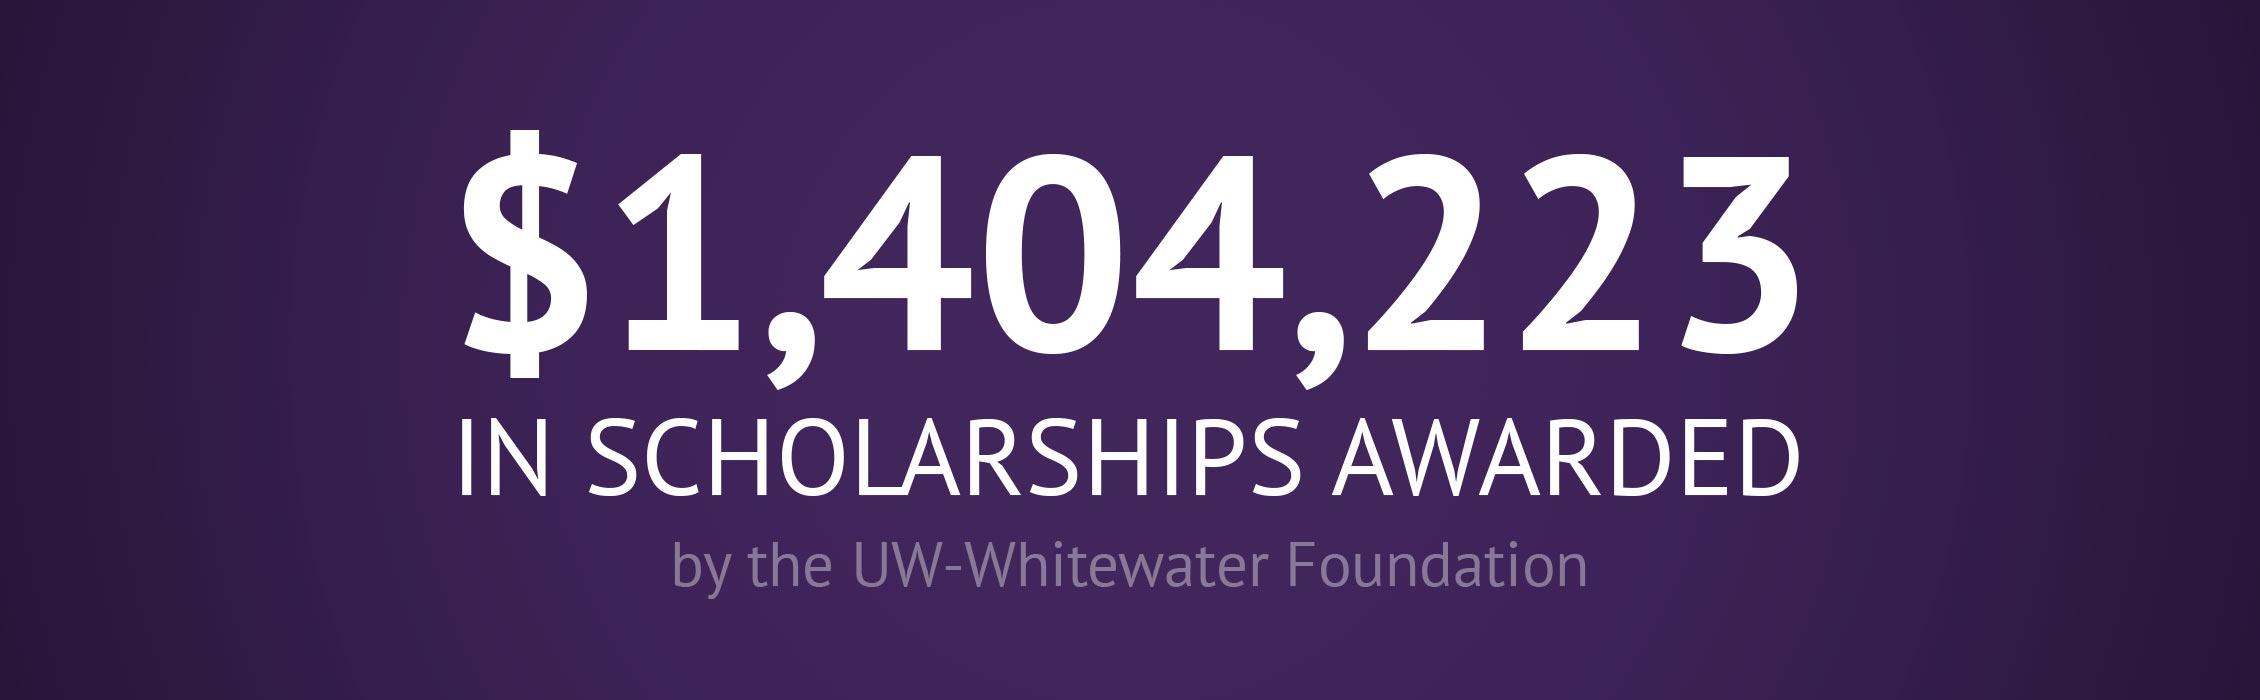 $1,404,223 in scholarships awarded by the UW-Whitewater Foundation